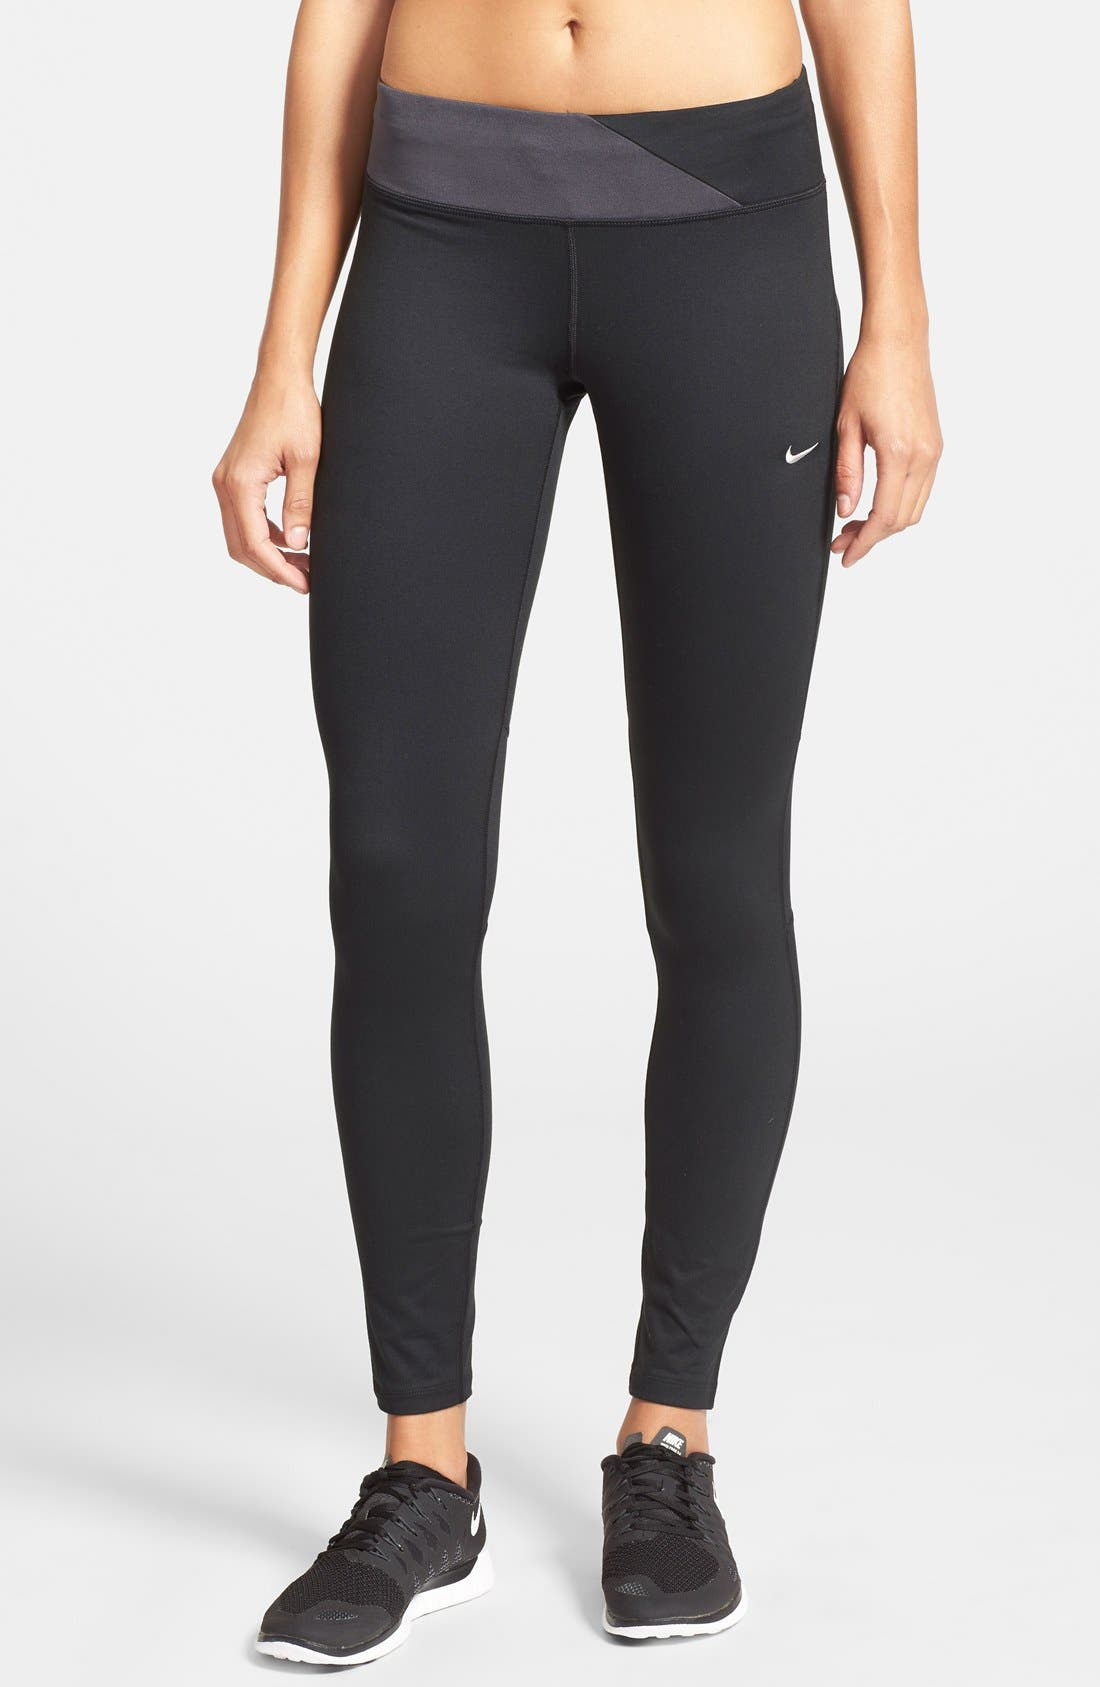 Alternate Image 1 Selected - Nike 'Epic Run' Tights